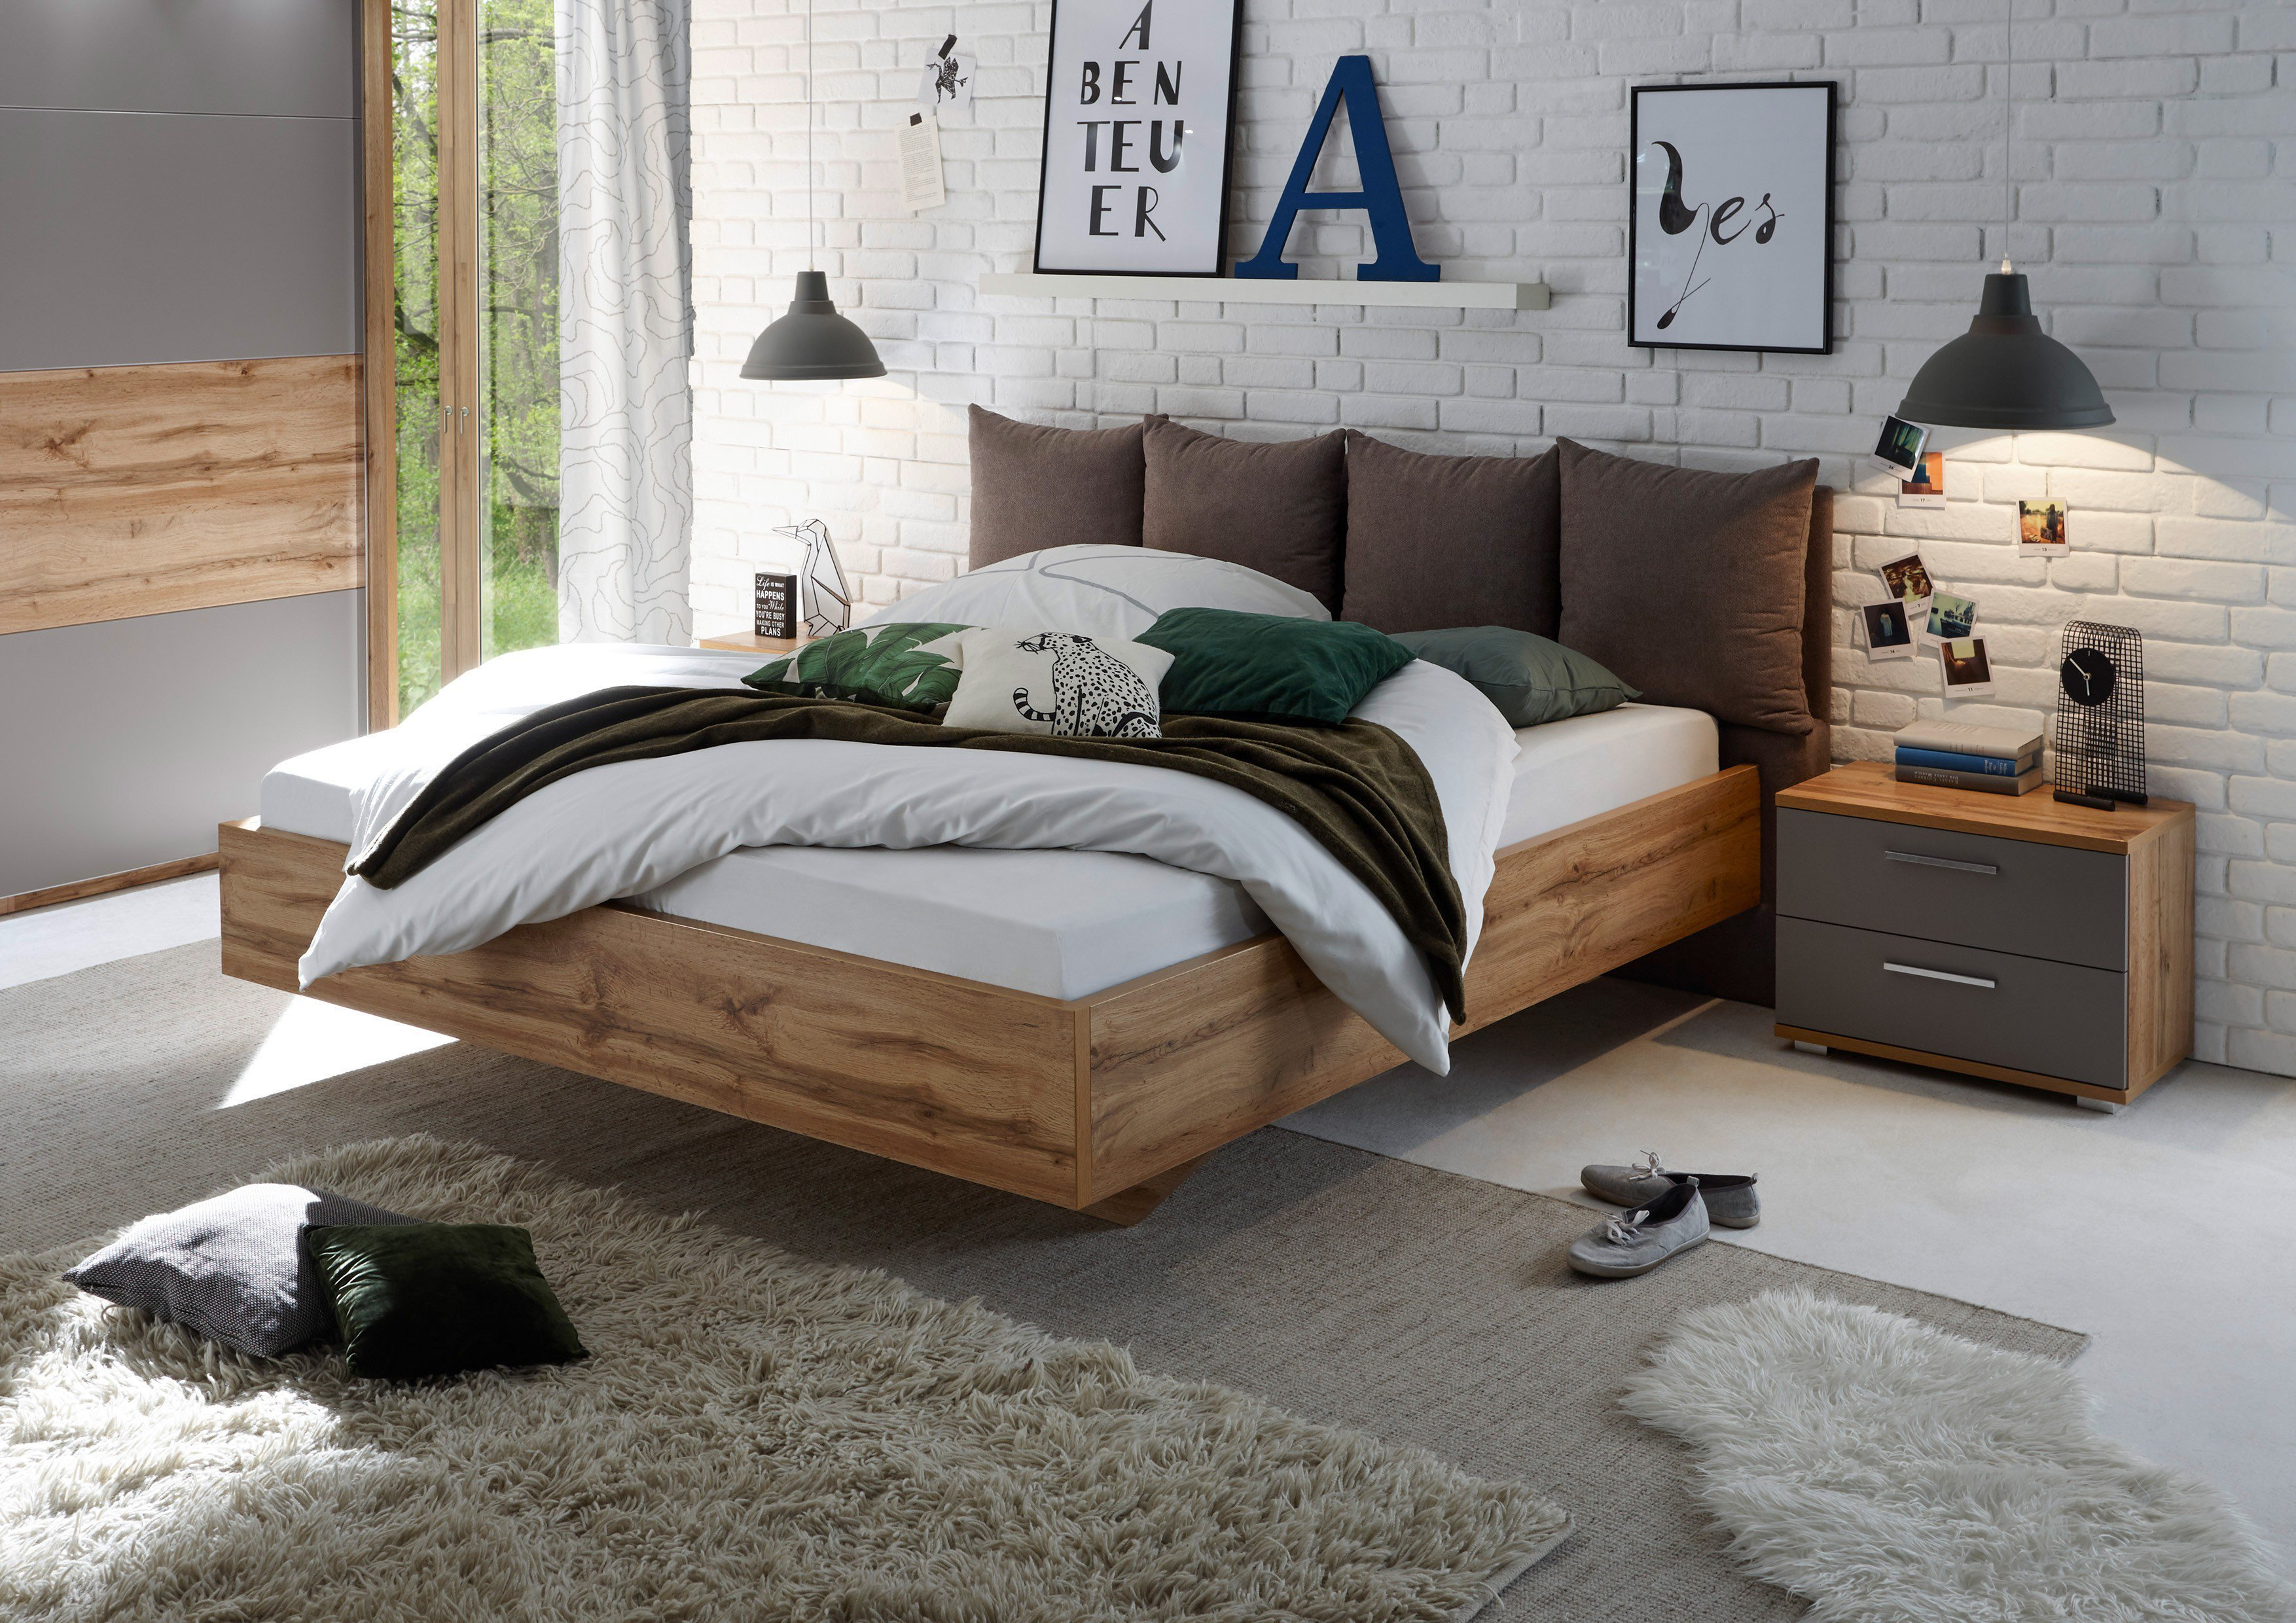 schlafkontor delta bett wildeiche basalt m bel letz ihr online shop. Black Bedroom Furniture Sets. Home Design Ideas